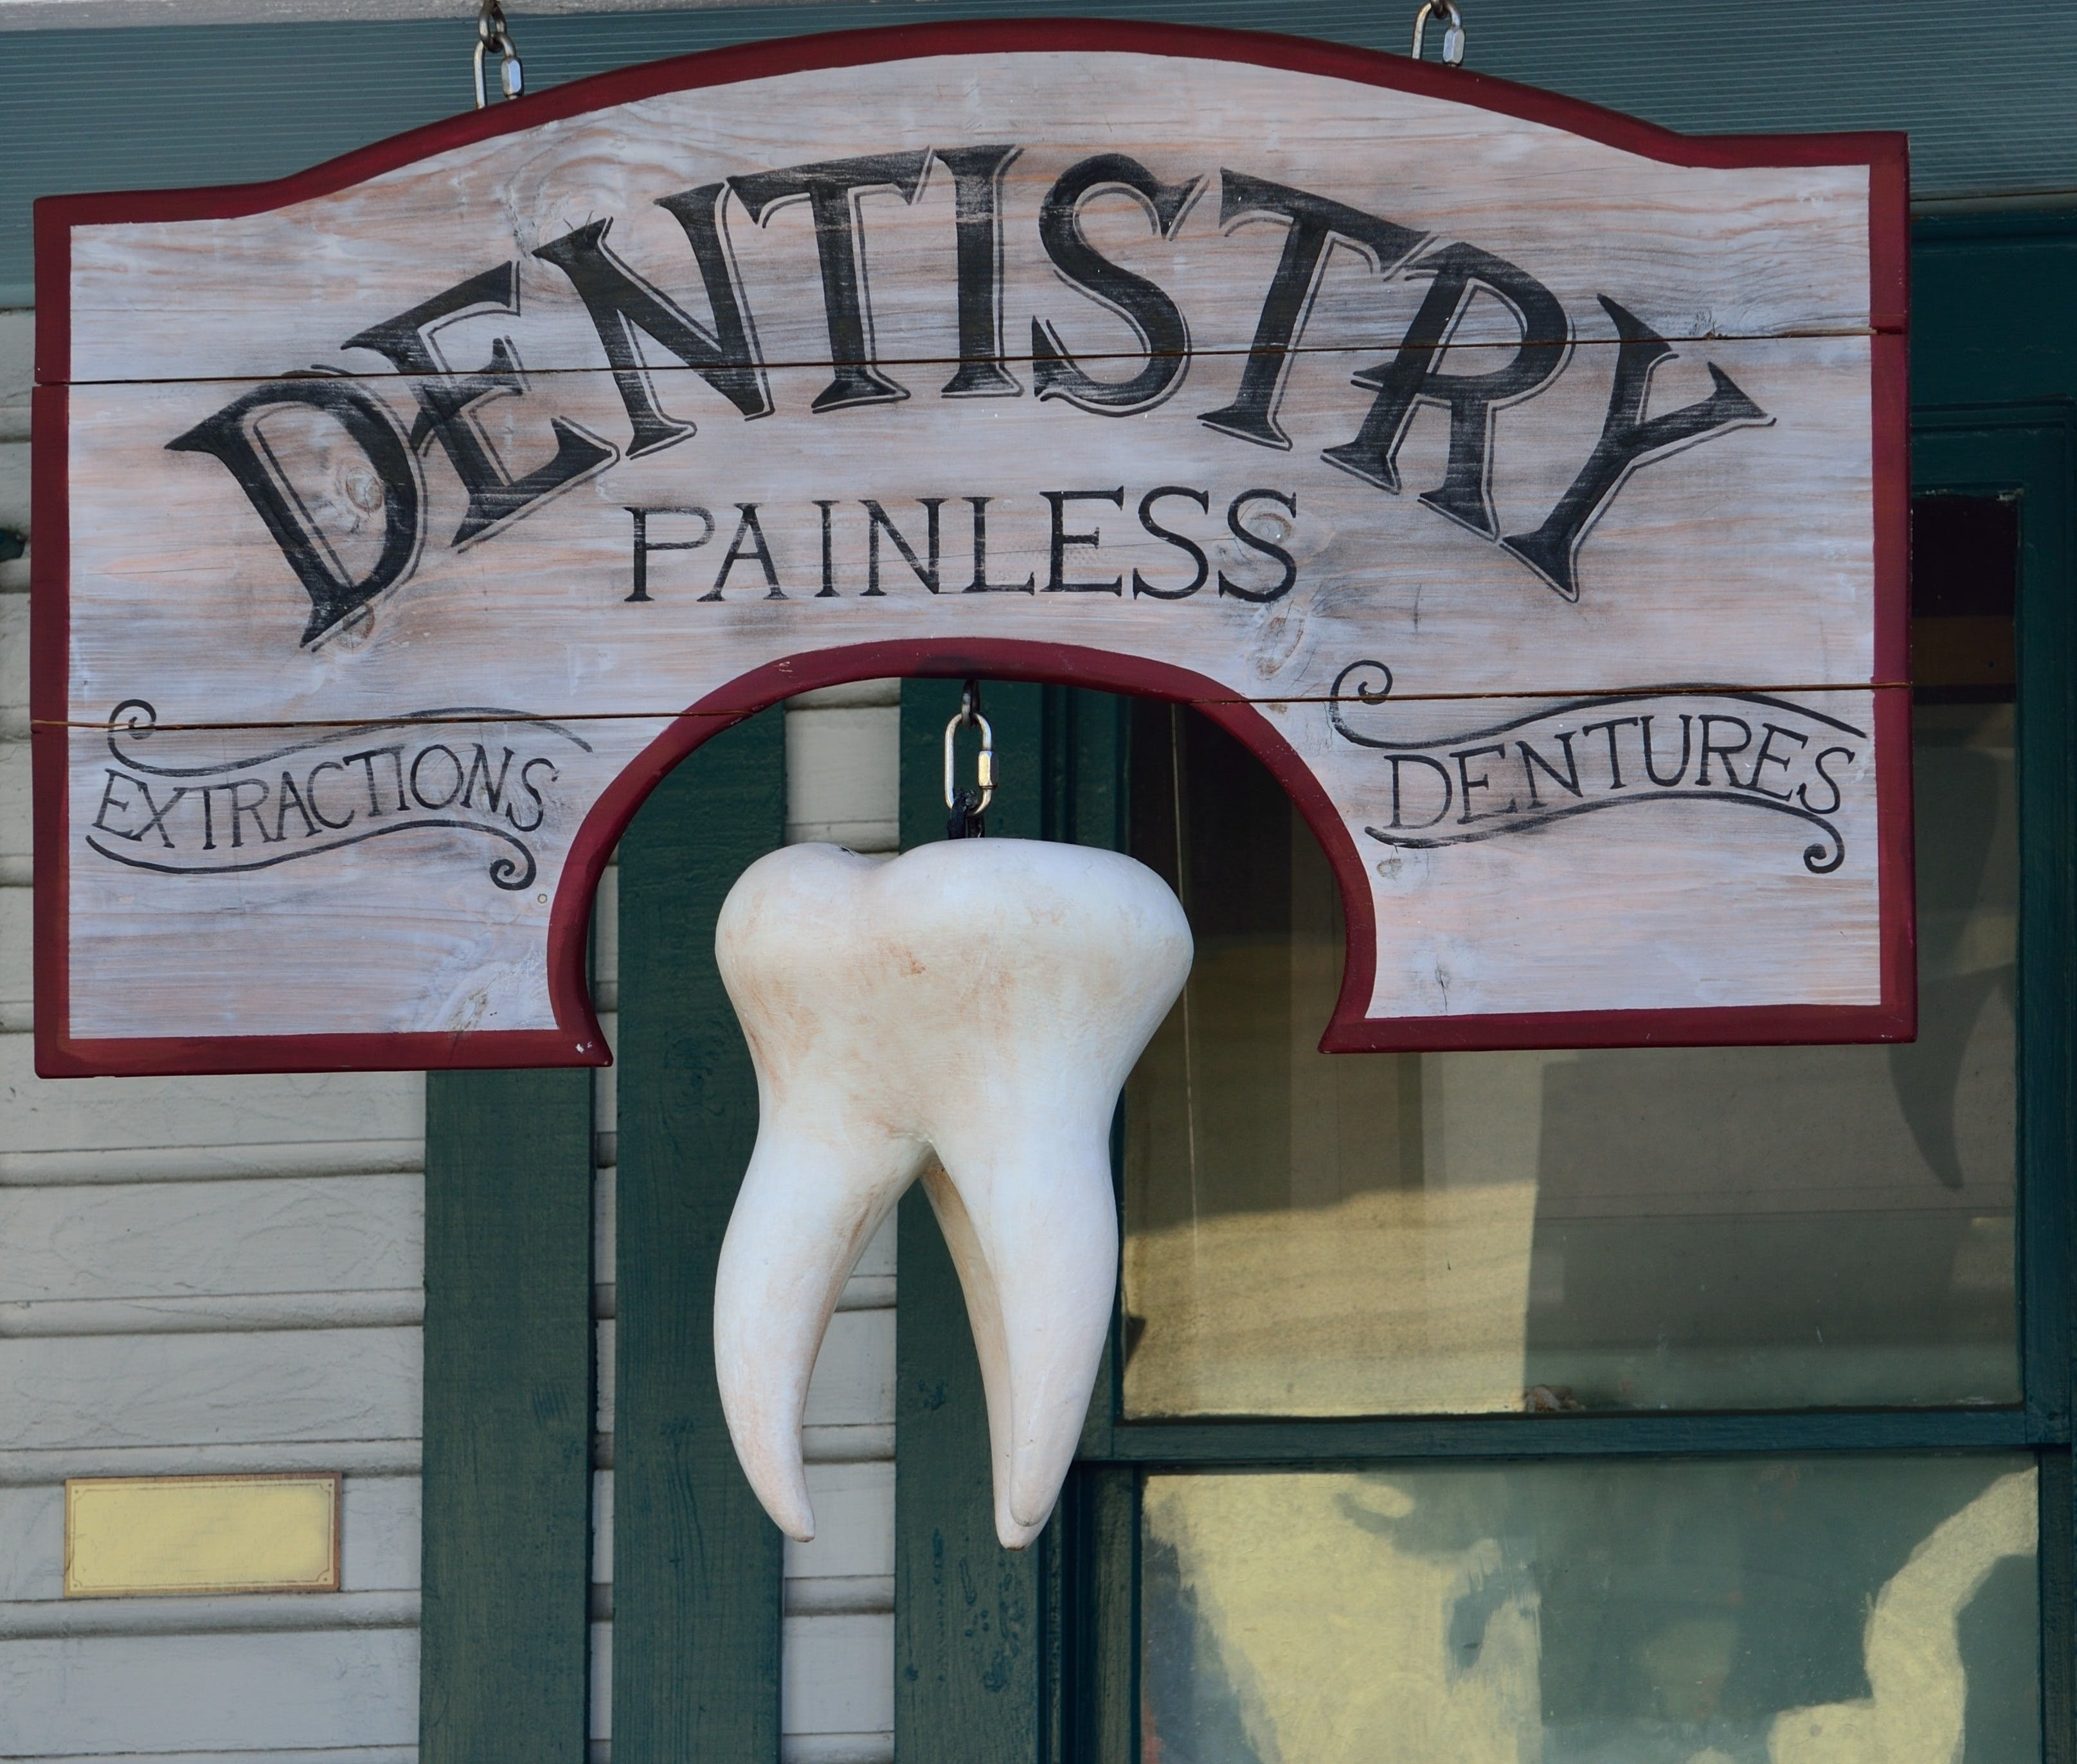 Dentistry Painless Signage